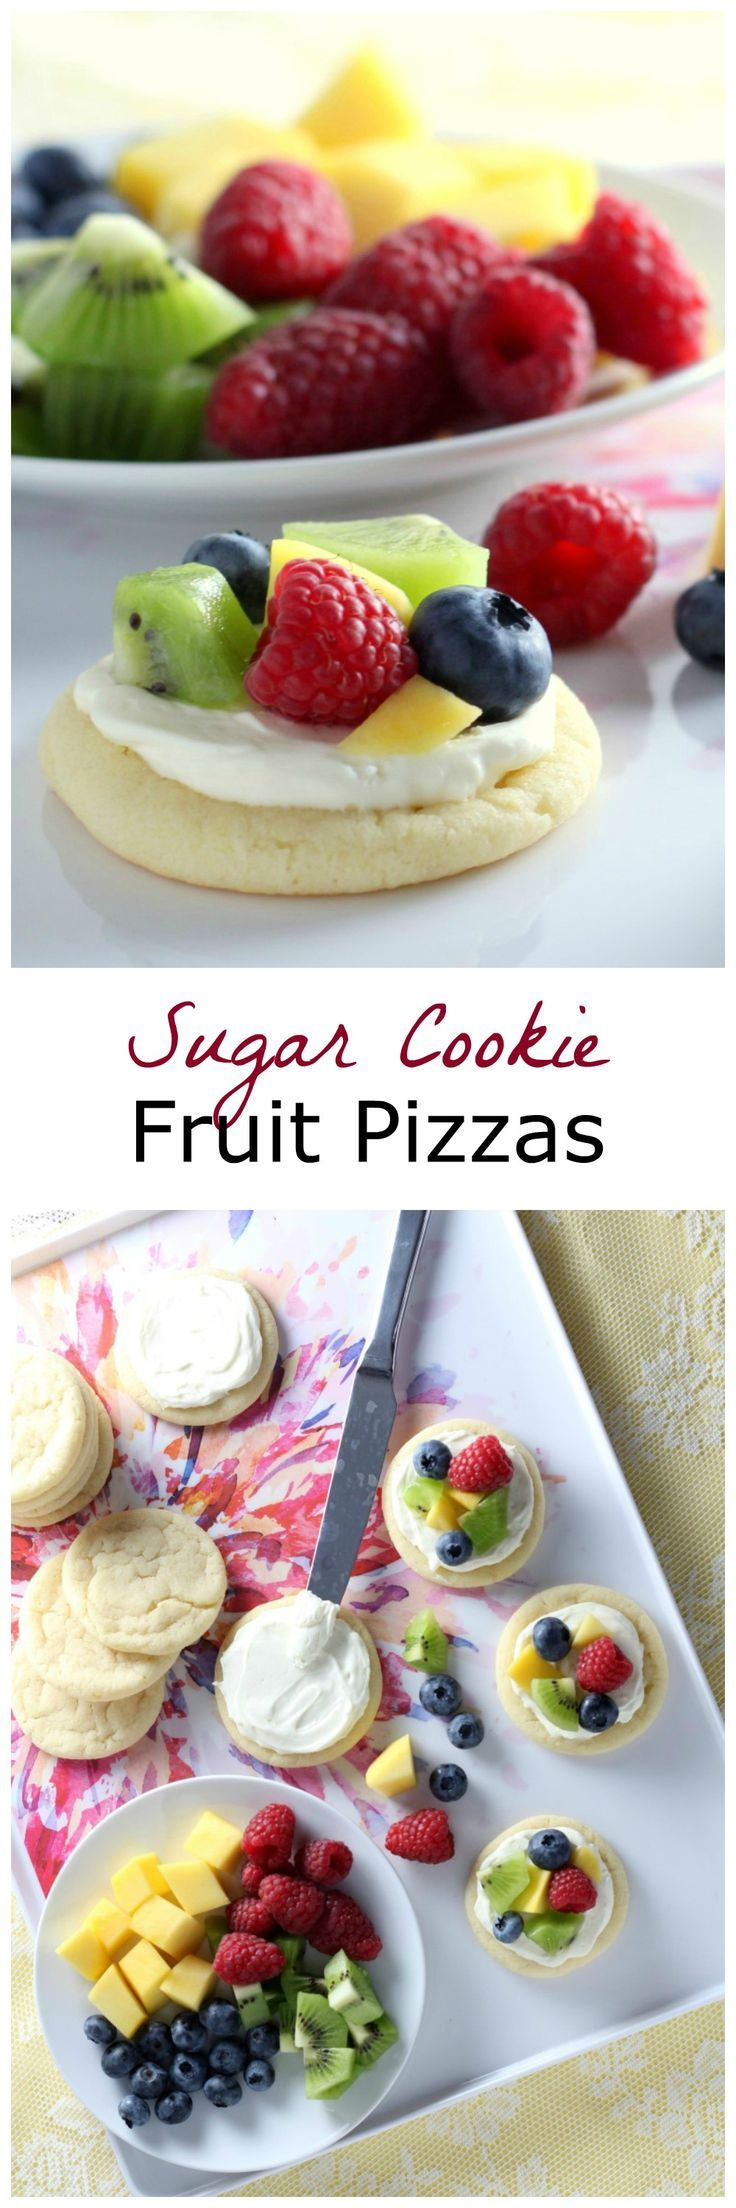 ... Cookie Fruit Pizzas - Perfect for Easter Dessert or anytime in Spring